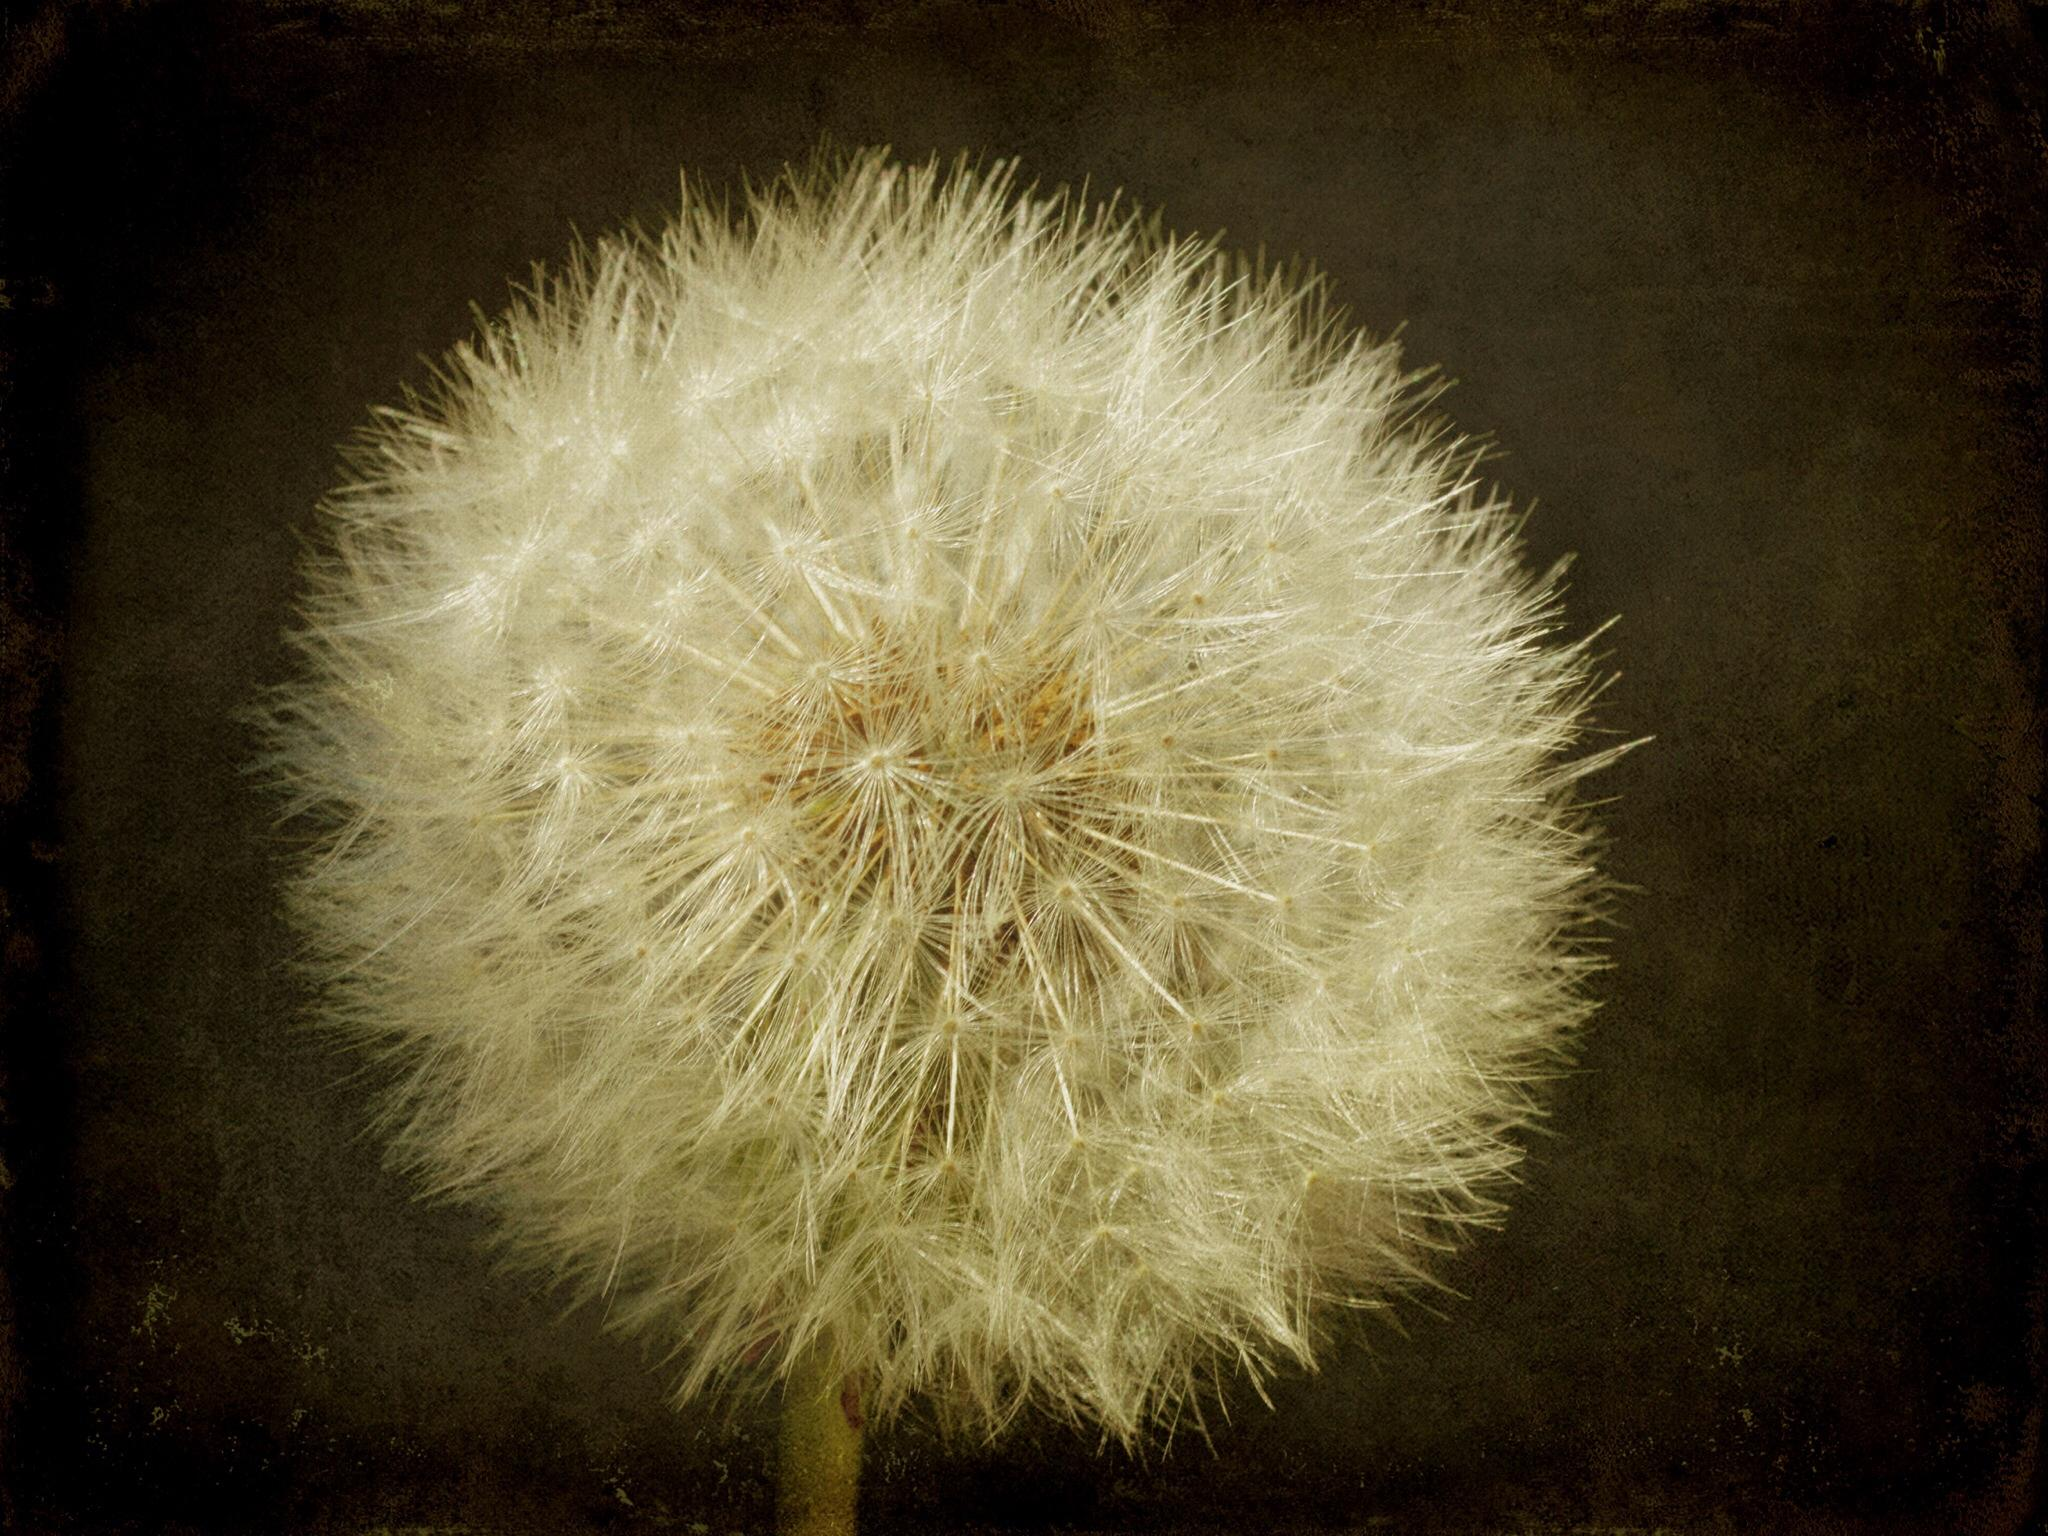 Textured Dandelion by slcouzens